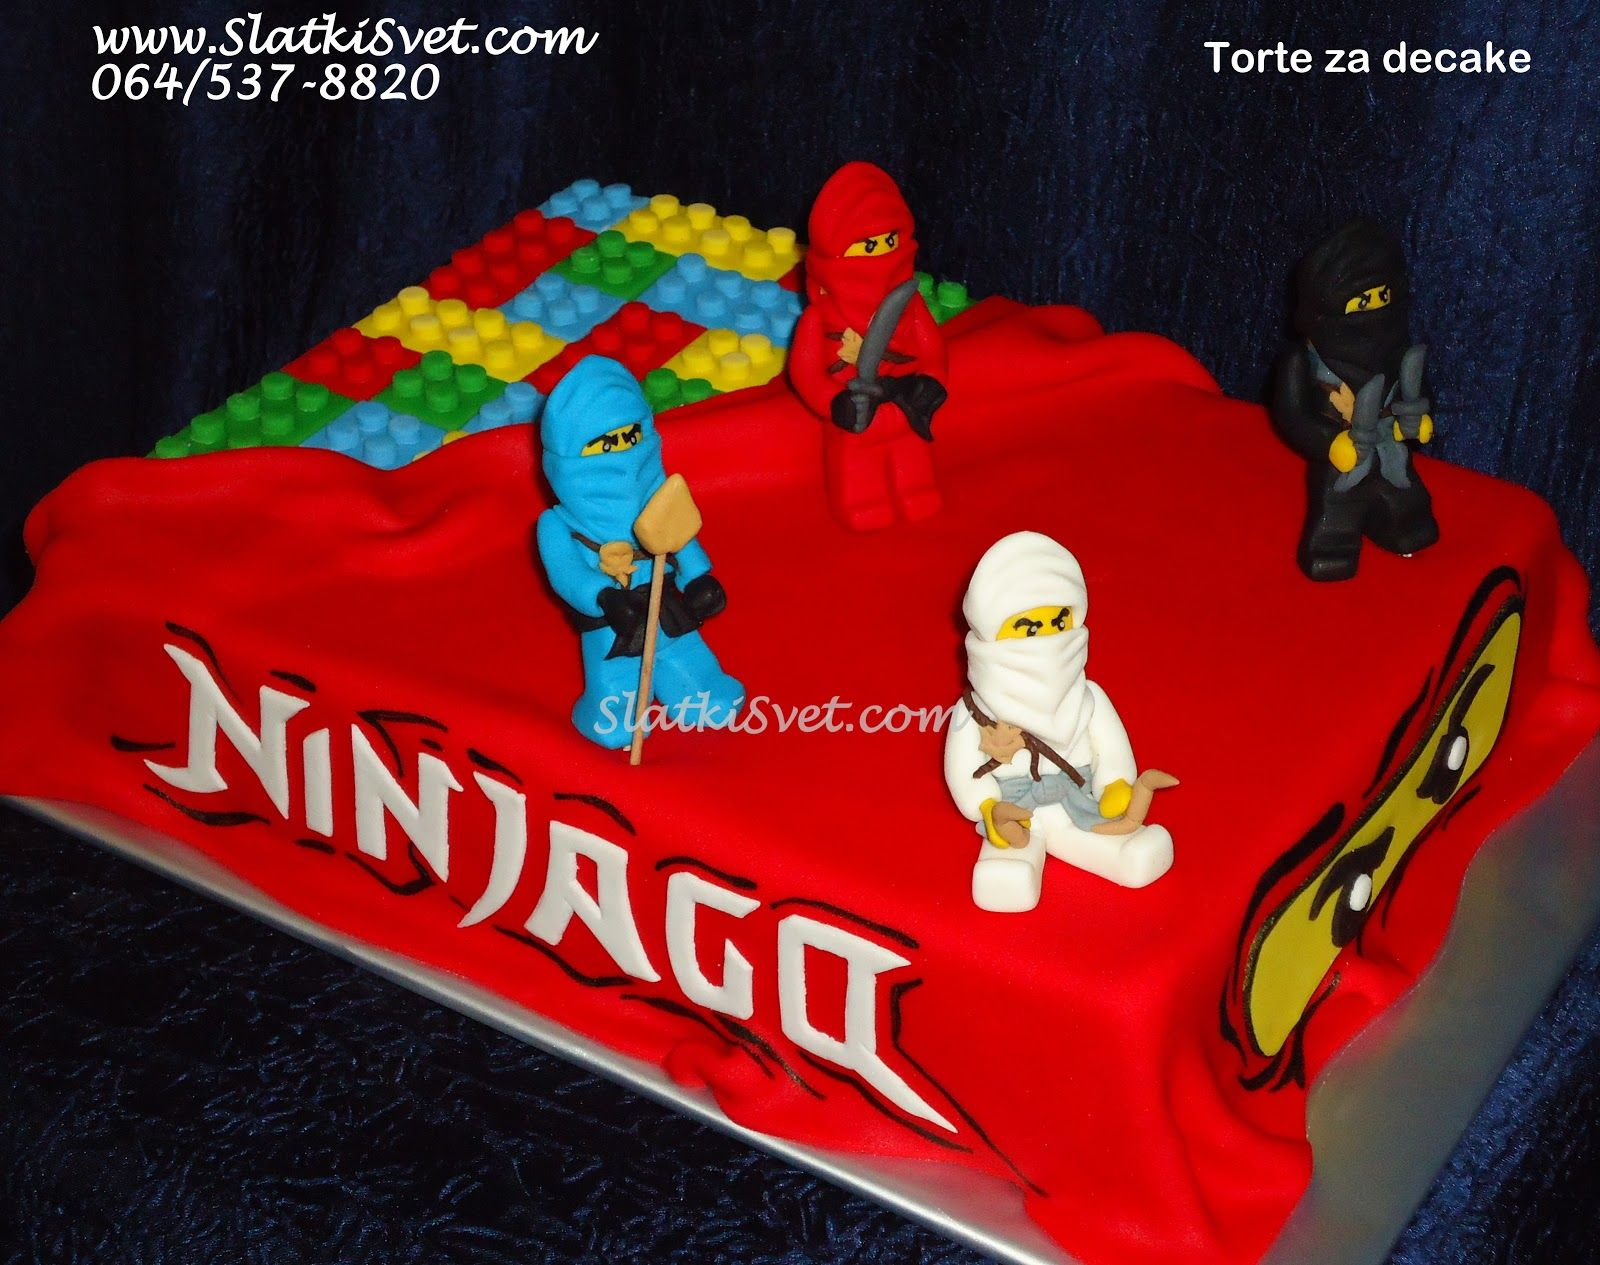 Torta ninjago lego ninjago birthday party for Ninjago zimmer deko